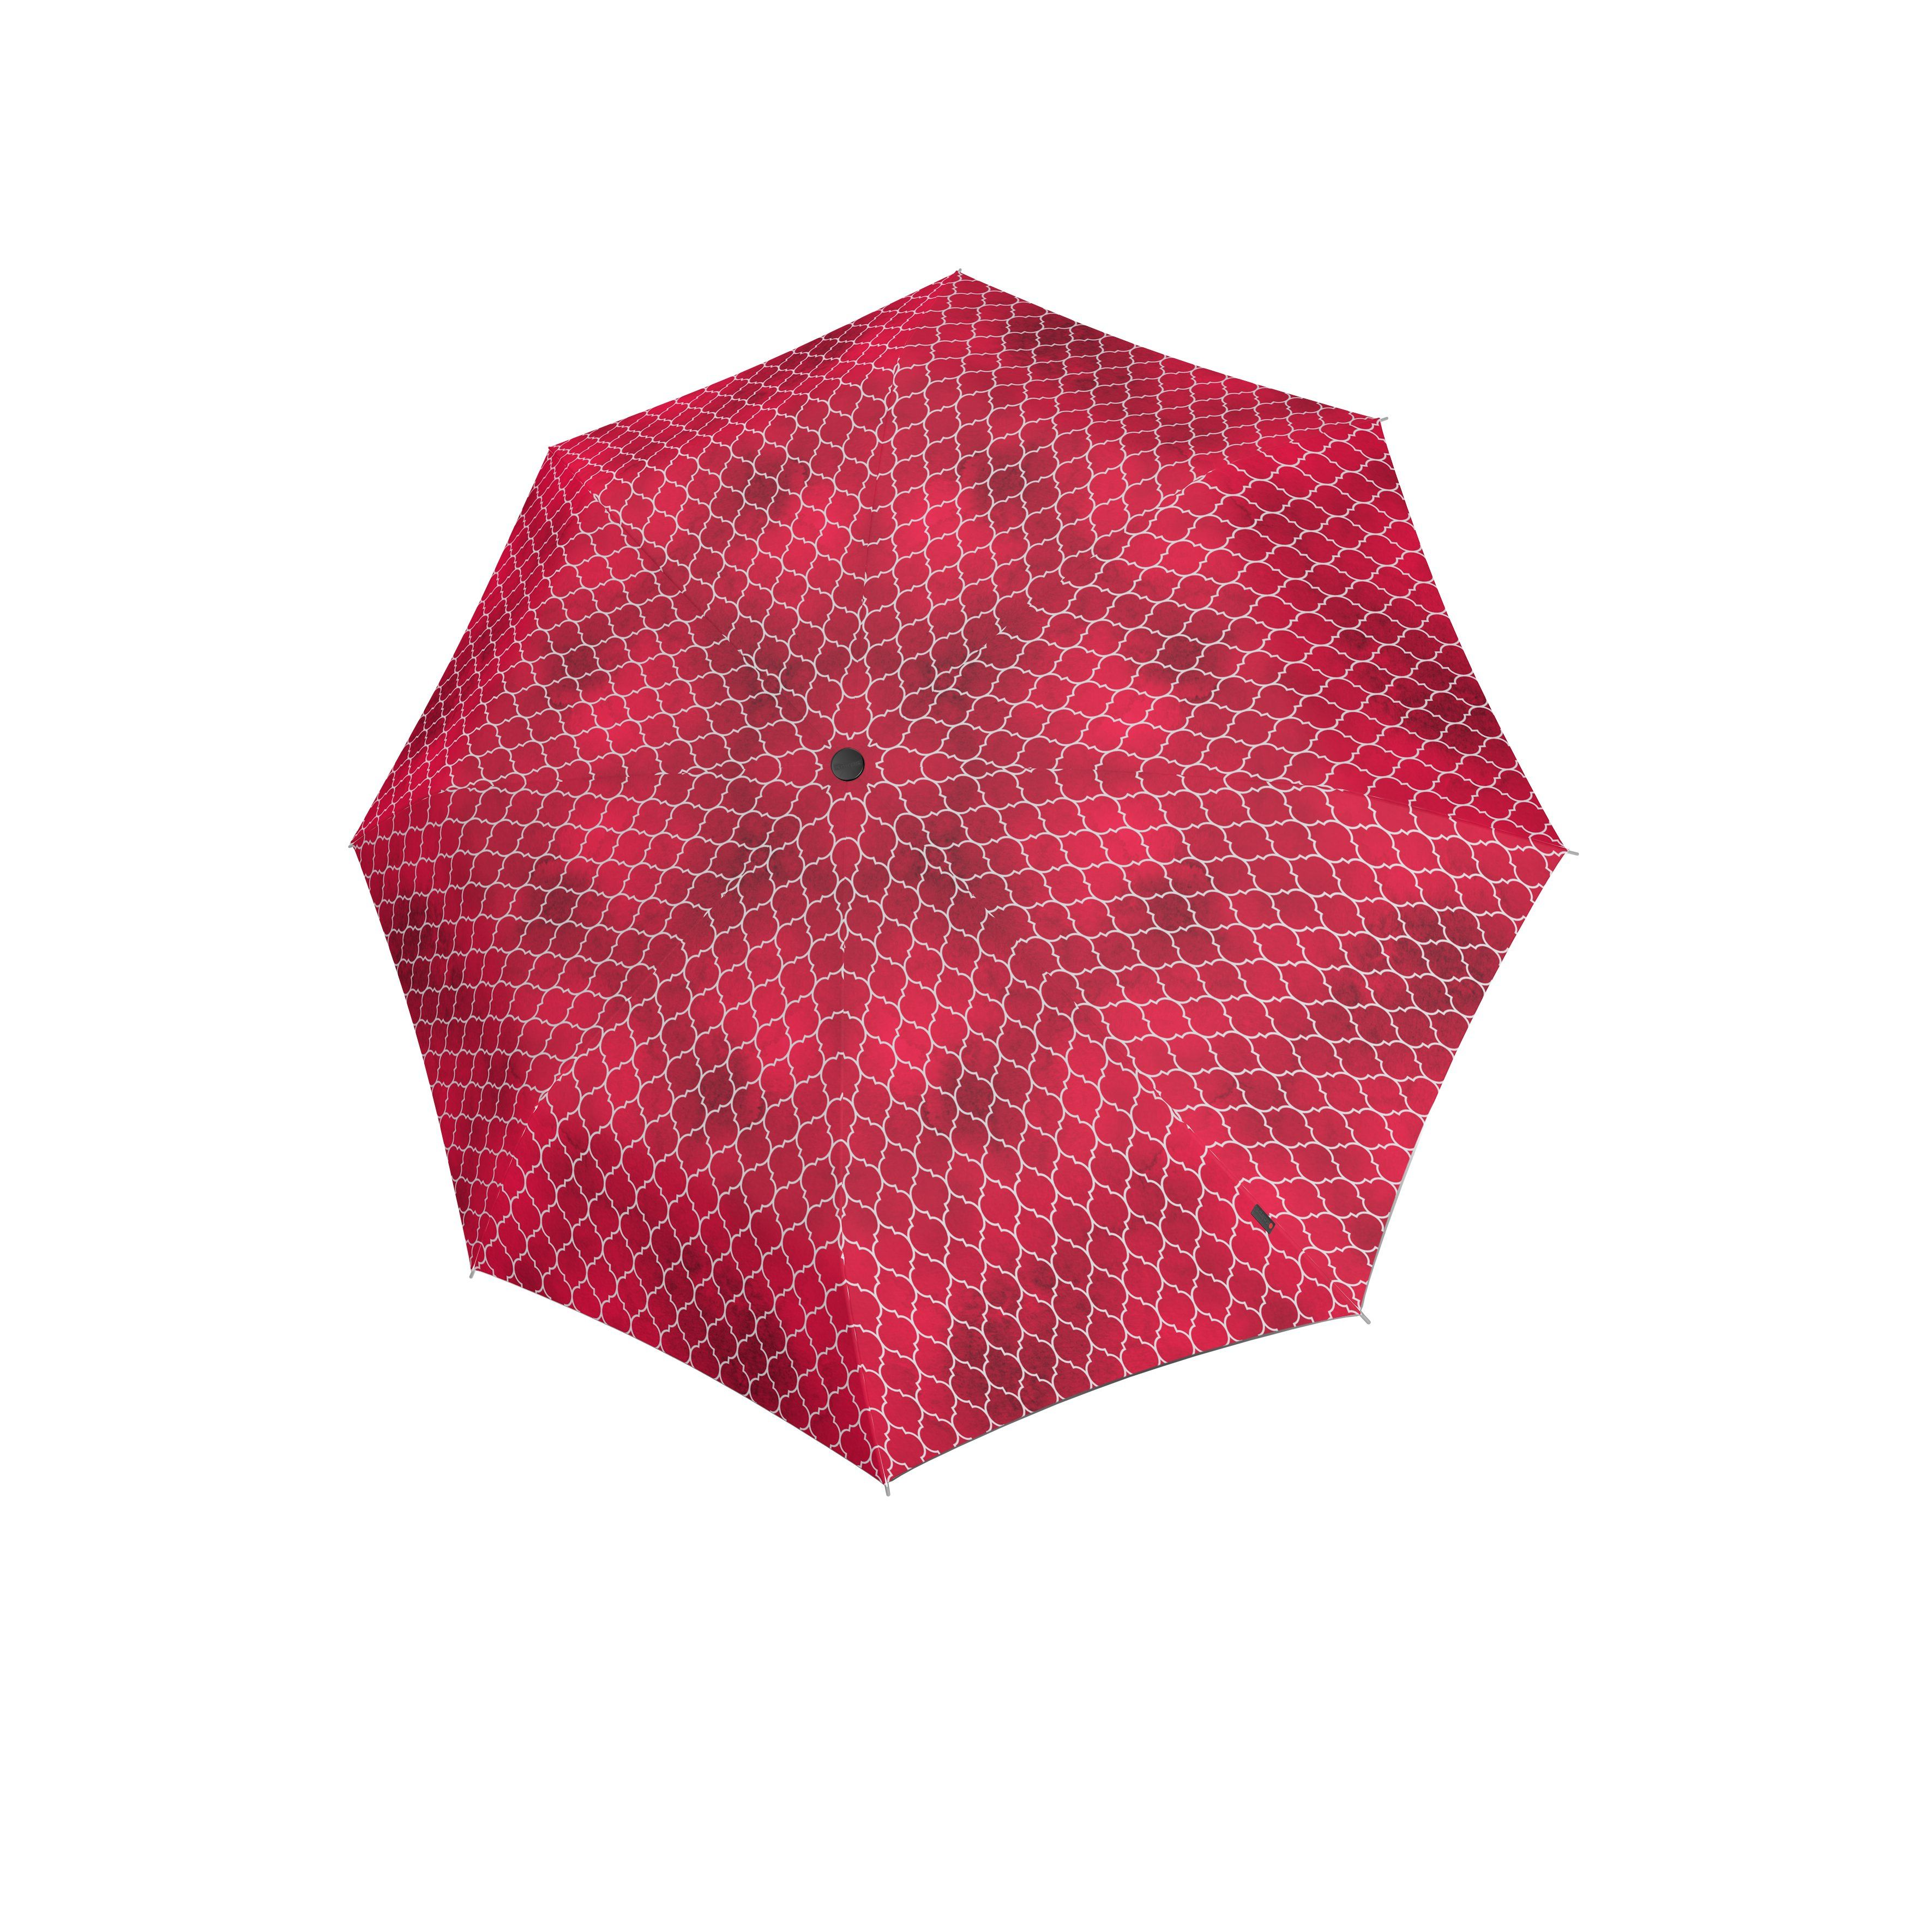 Knirps Umbrella Knirps T.200 medium duomatic regenerate red with UV Protection